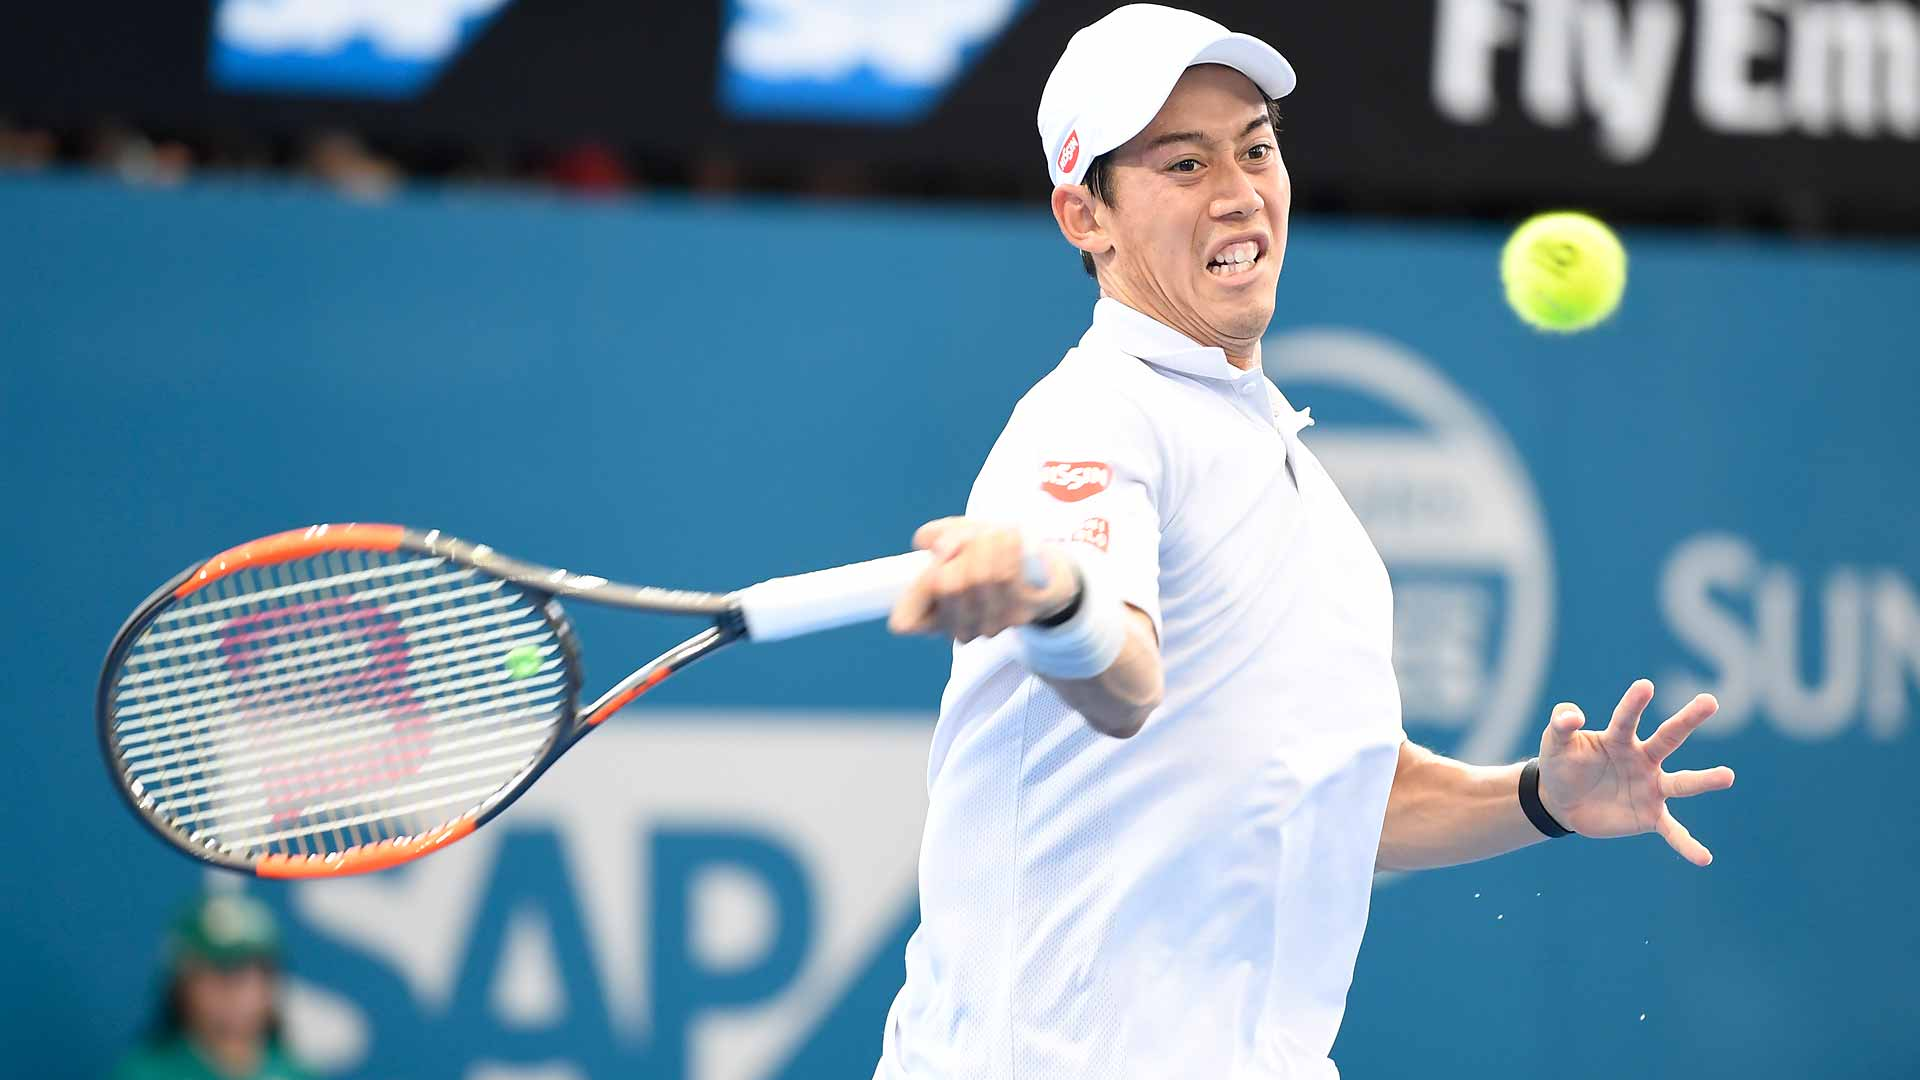 Kei Nishikori puts on a dazzling display against Stan Wawrinka in Brisbane.